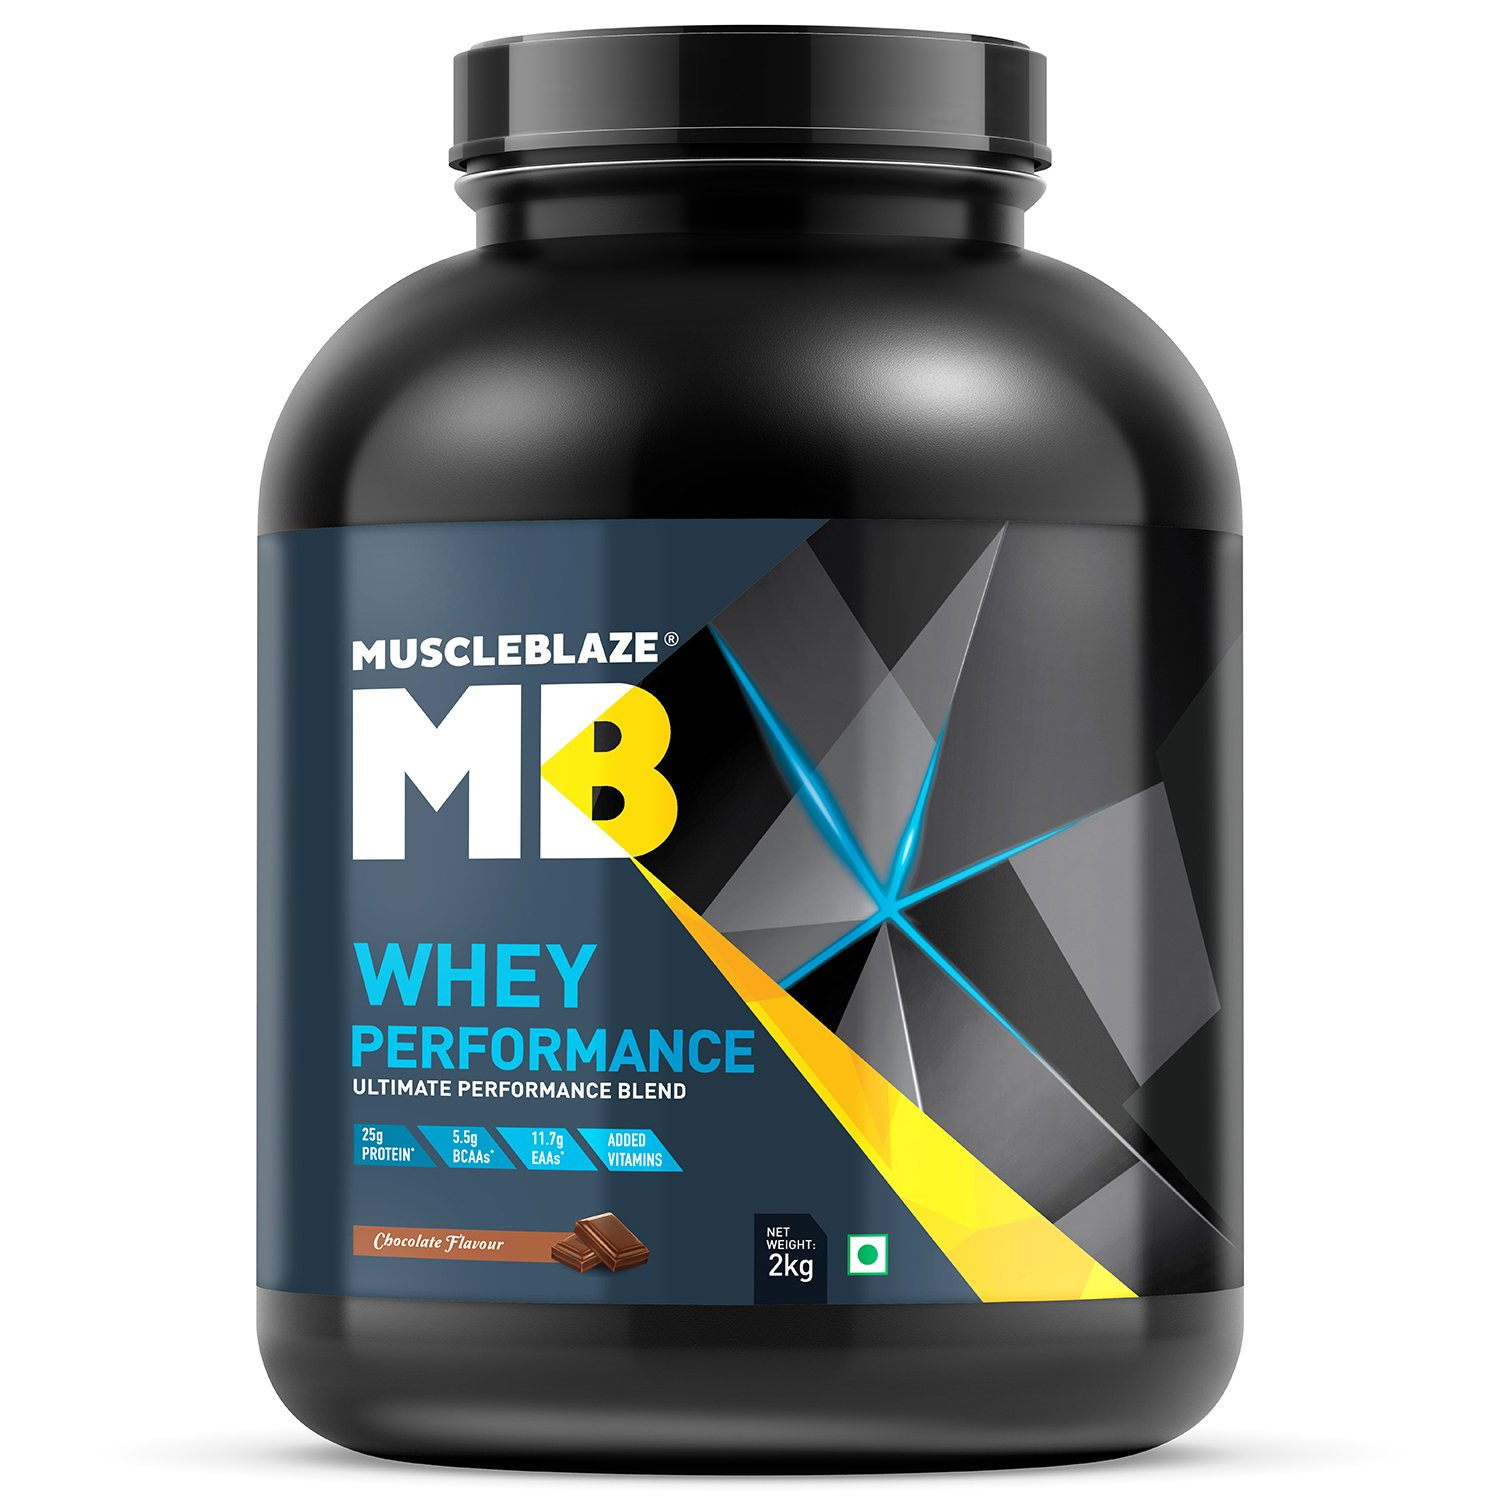 MuscleBlaze WheyPerformance 2 kgChocolate